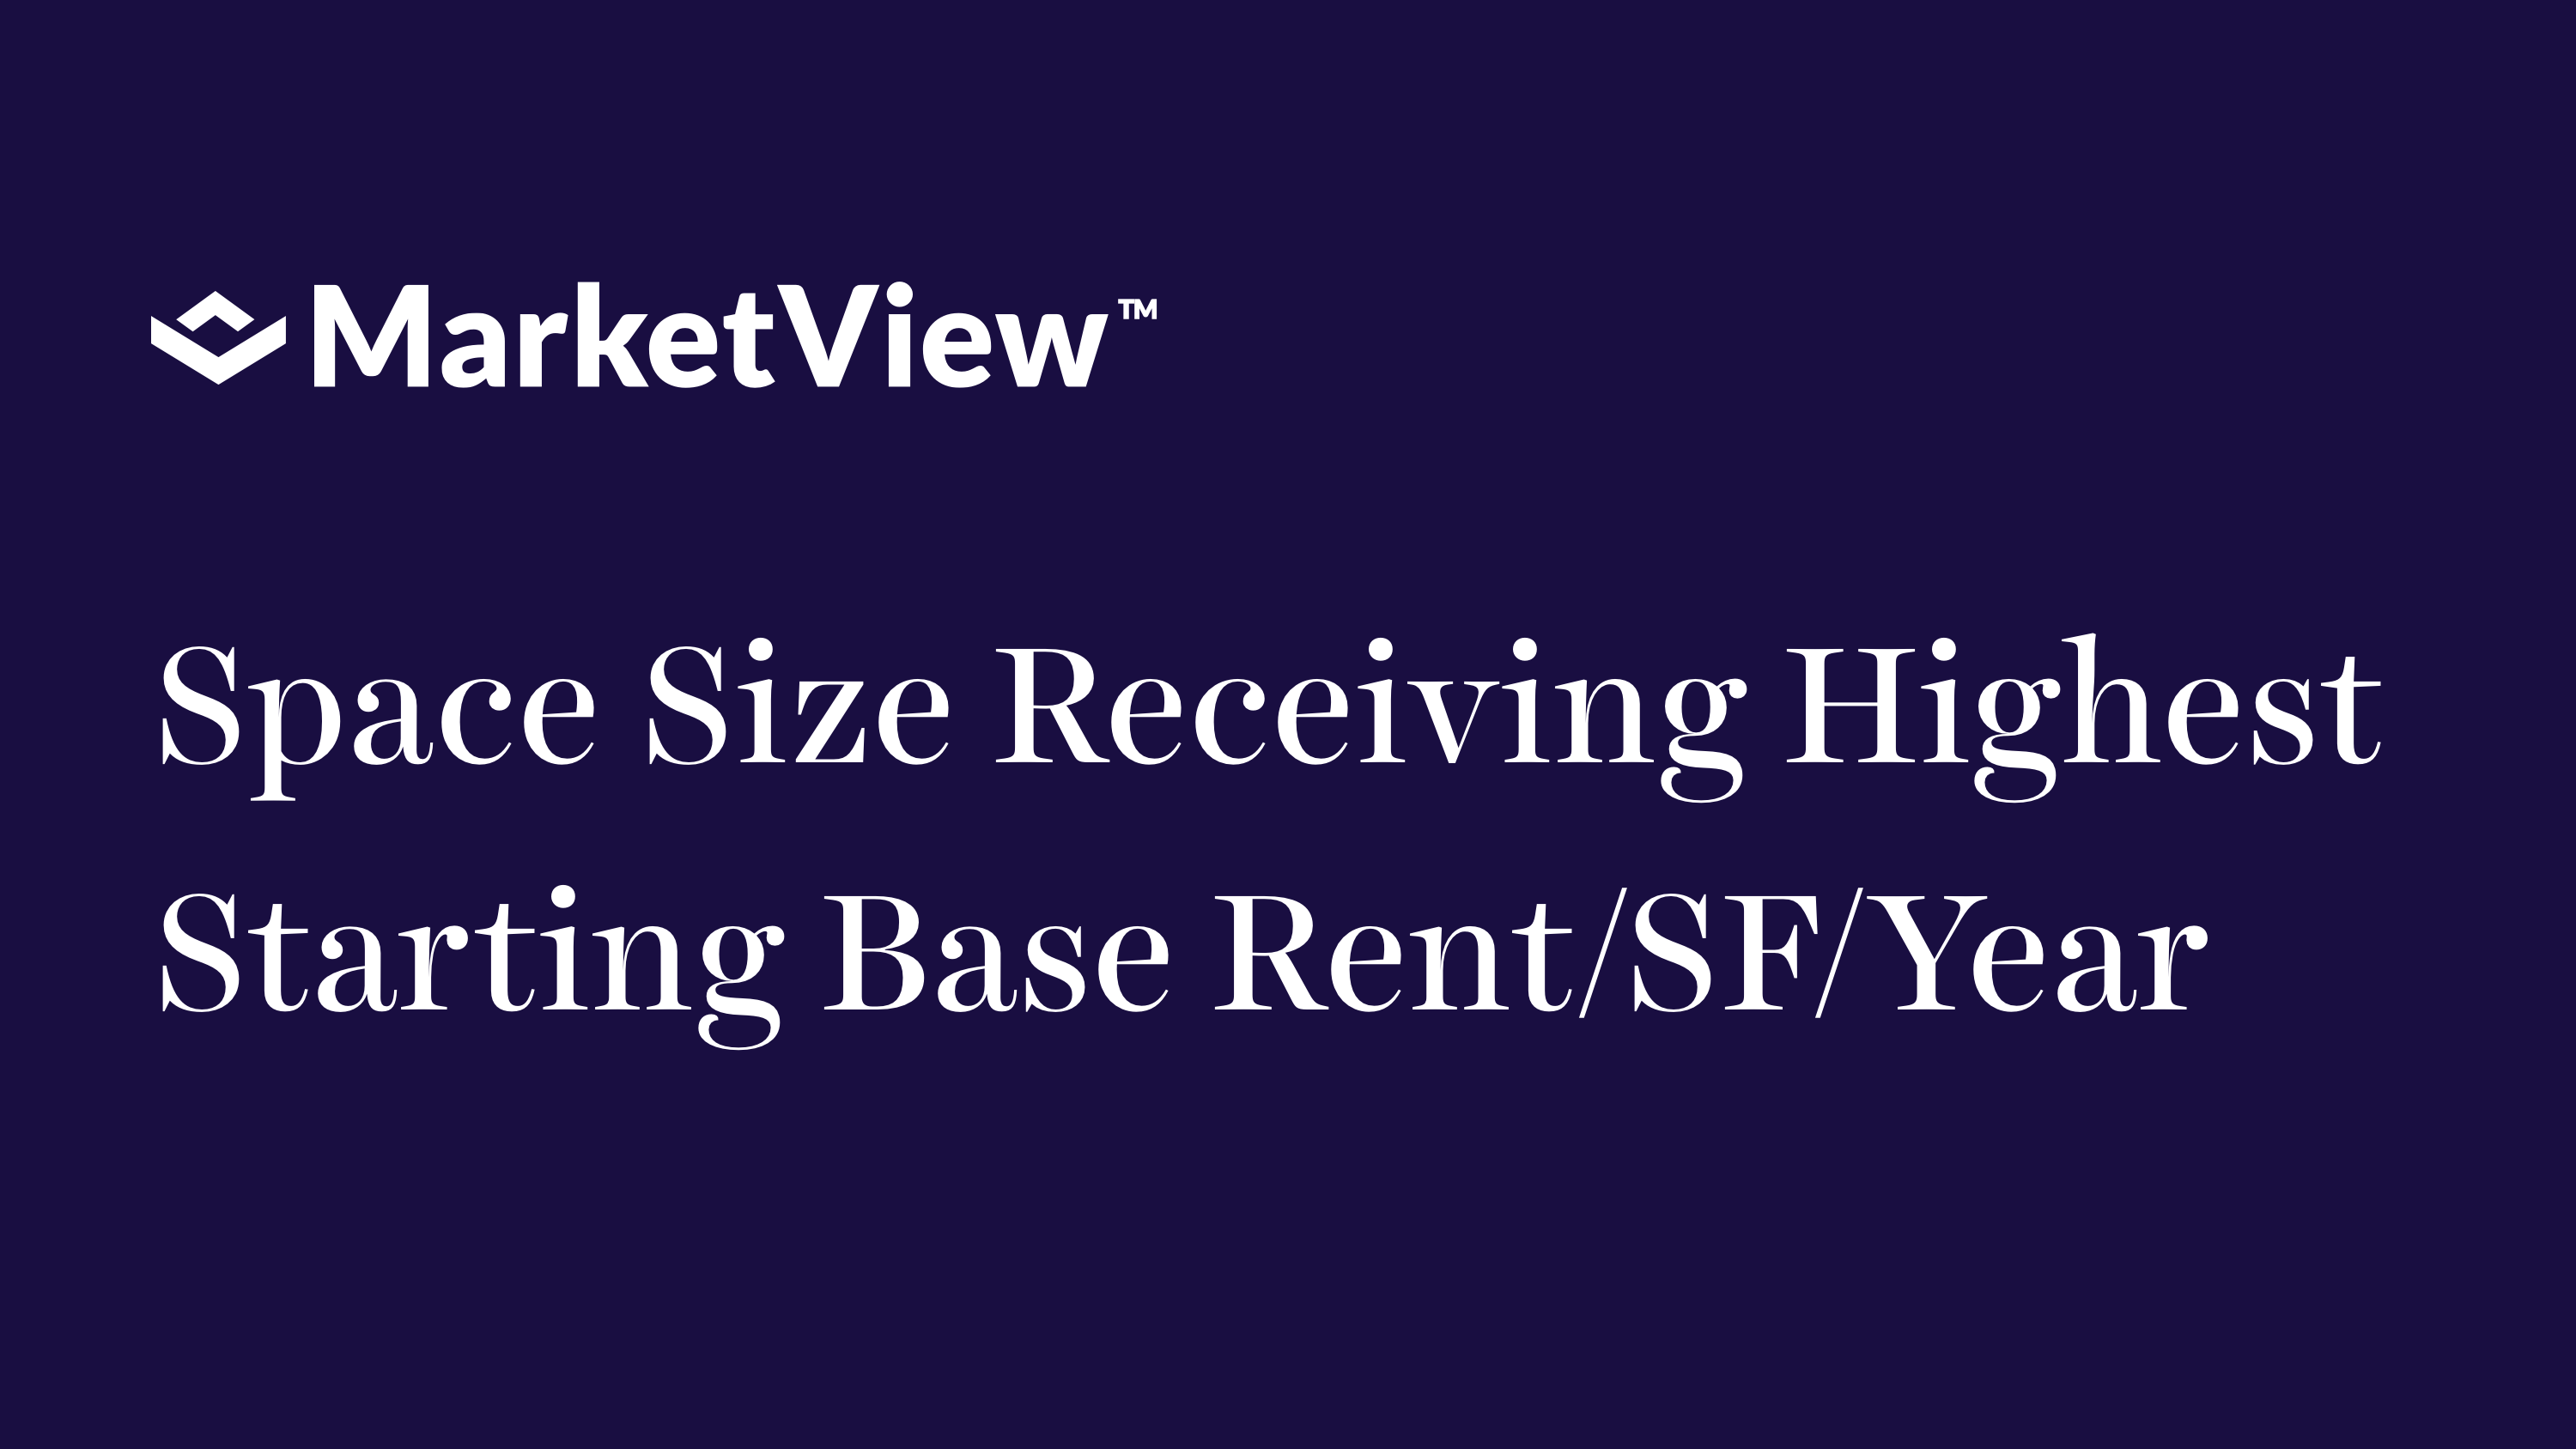 VTS MarketView Benchmarks - Space size receiving highest starting base rent SF year